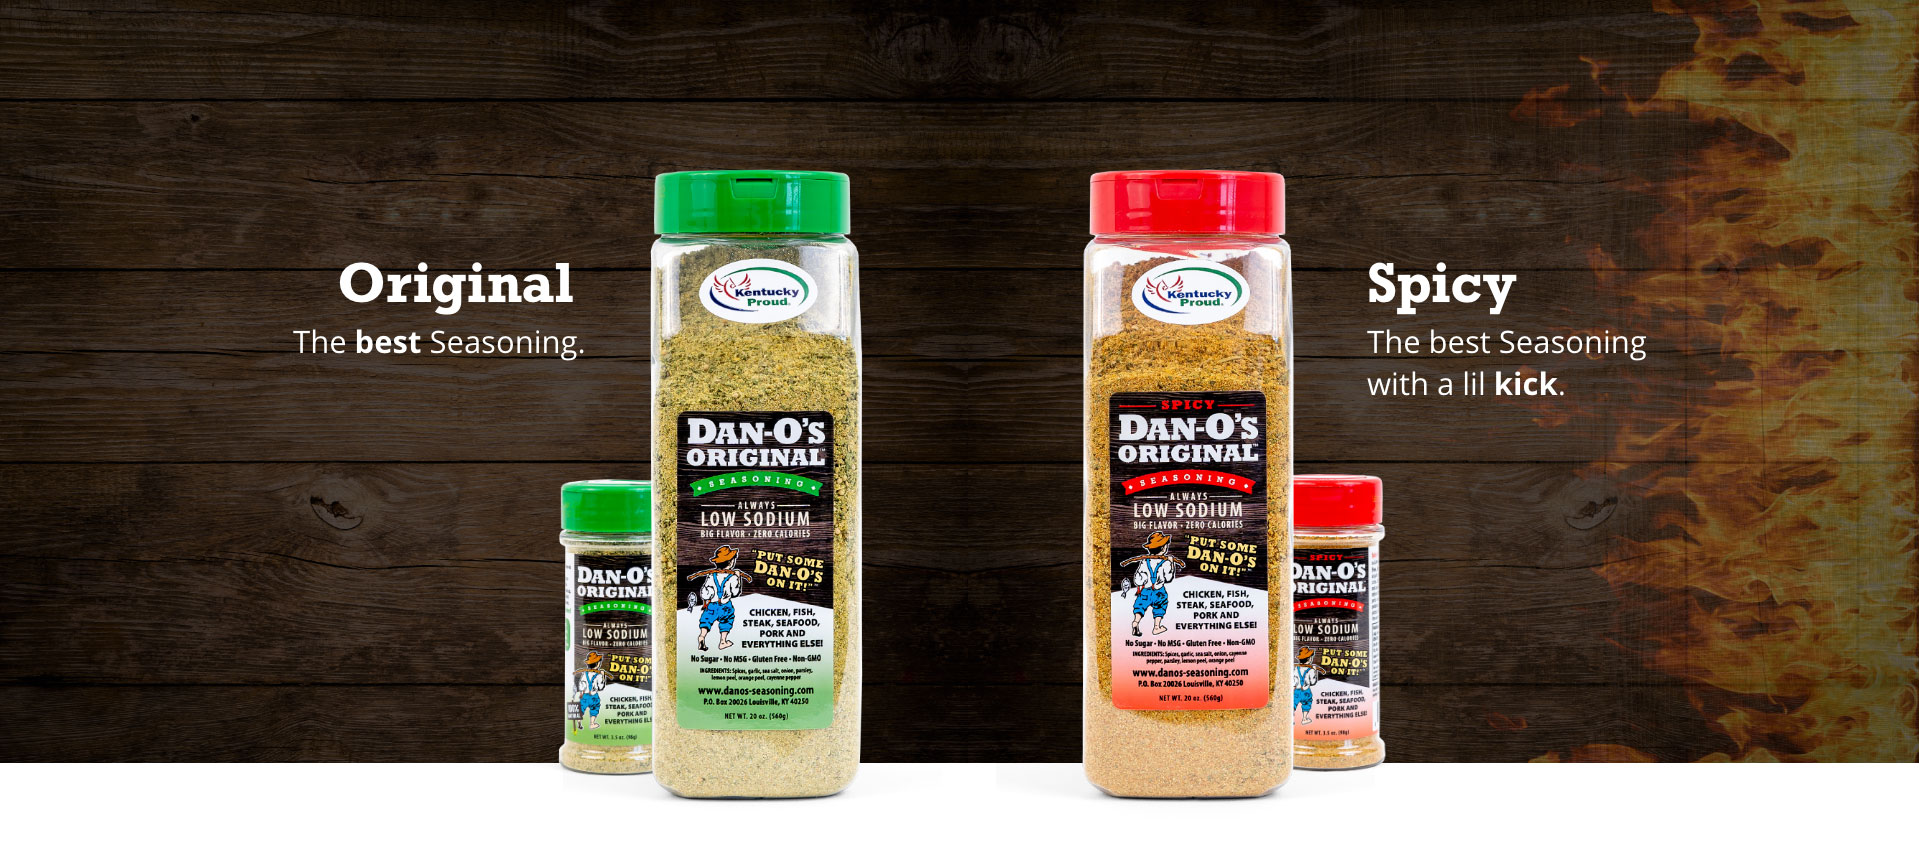 Dan-O's Original and Spicy Seasonings Bottles - All Variants